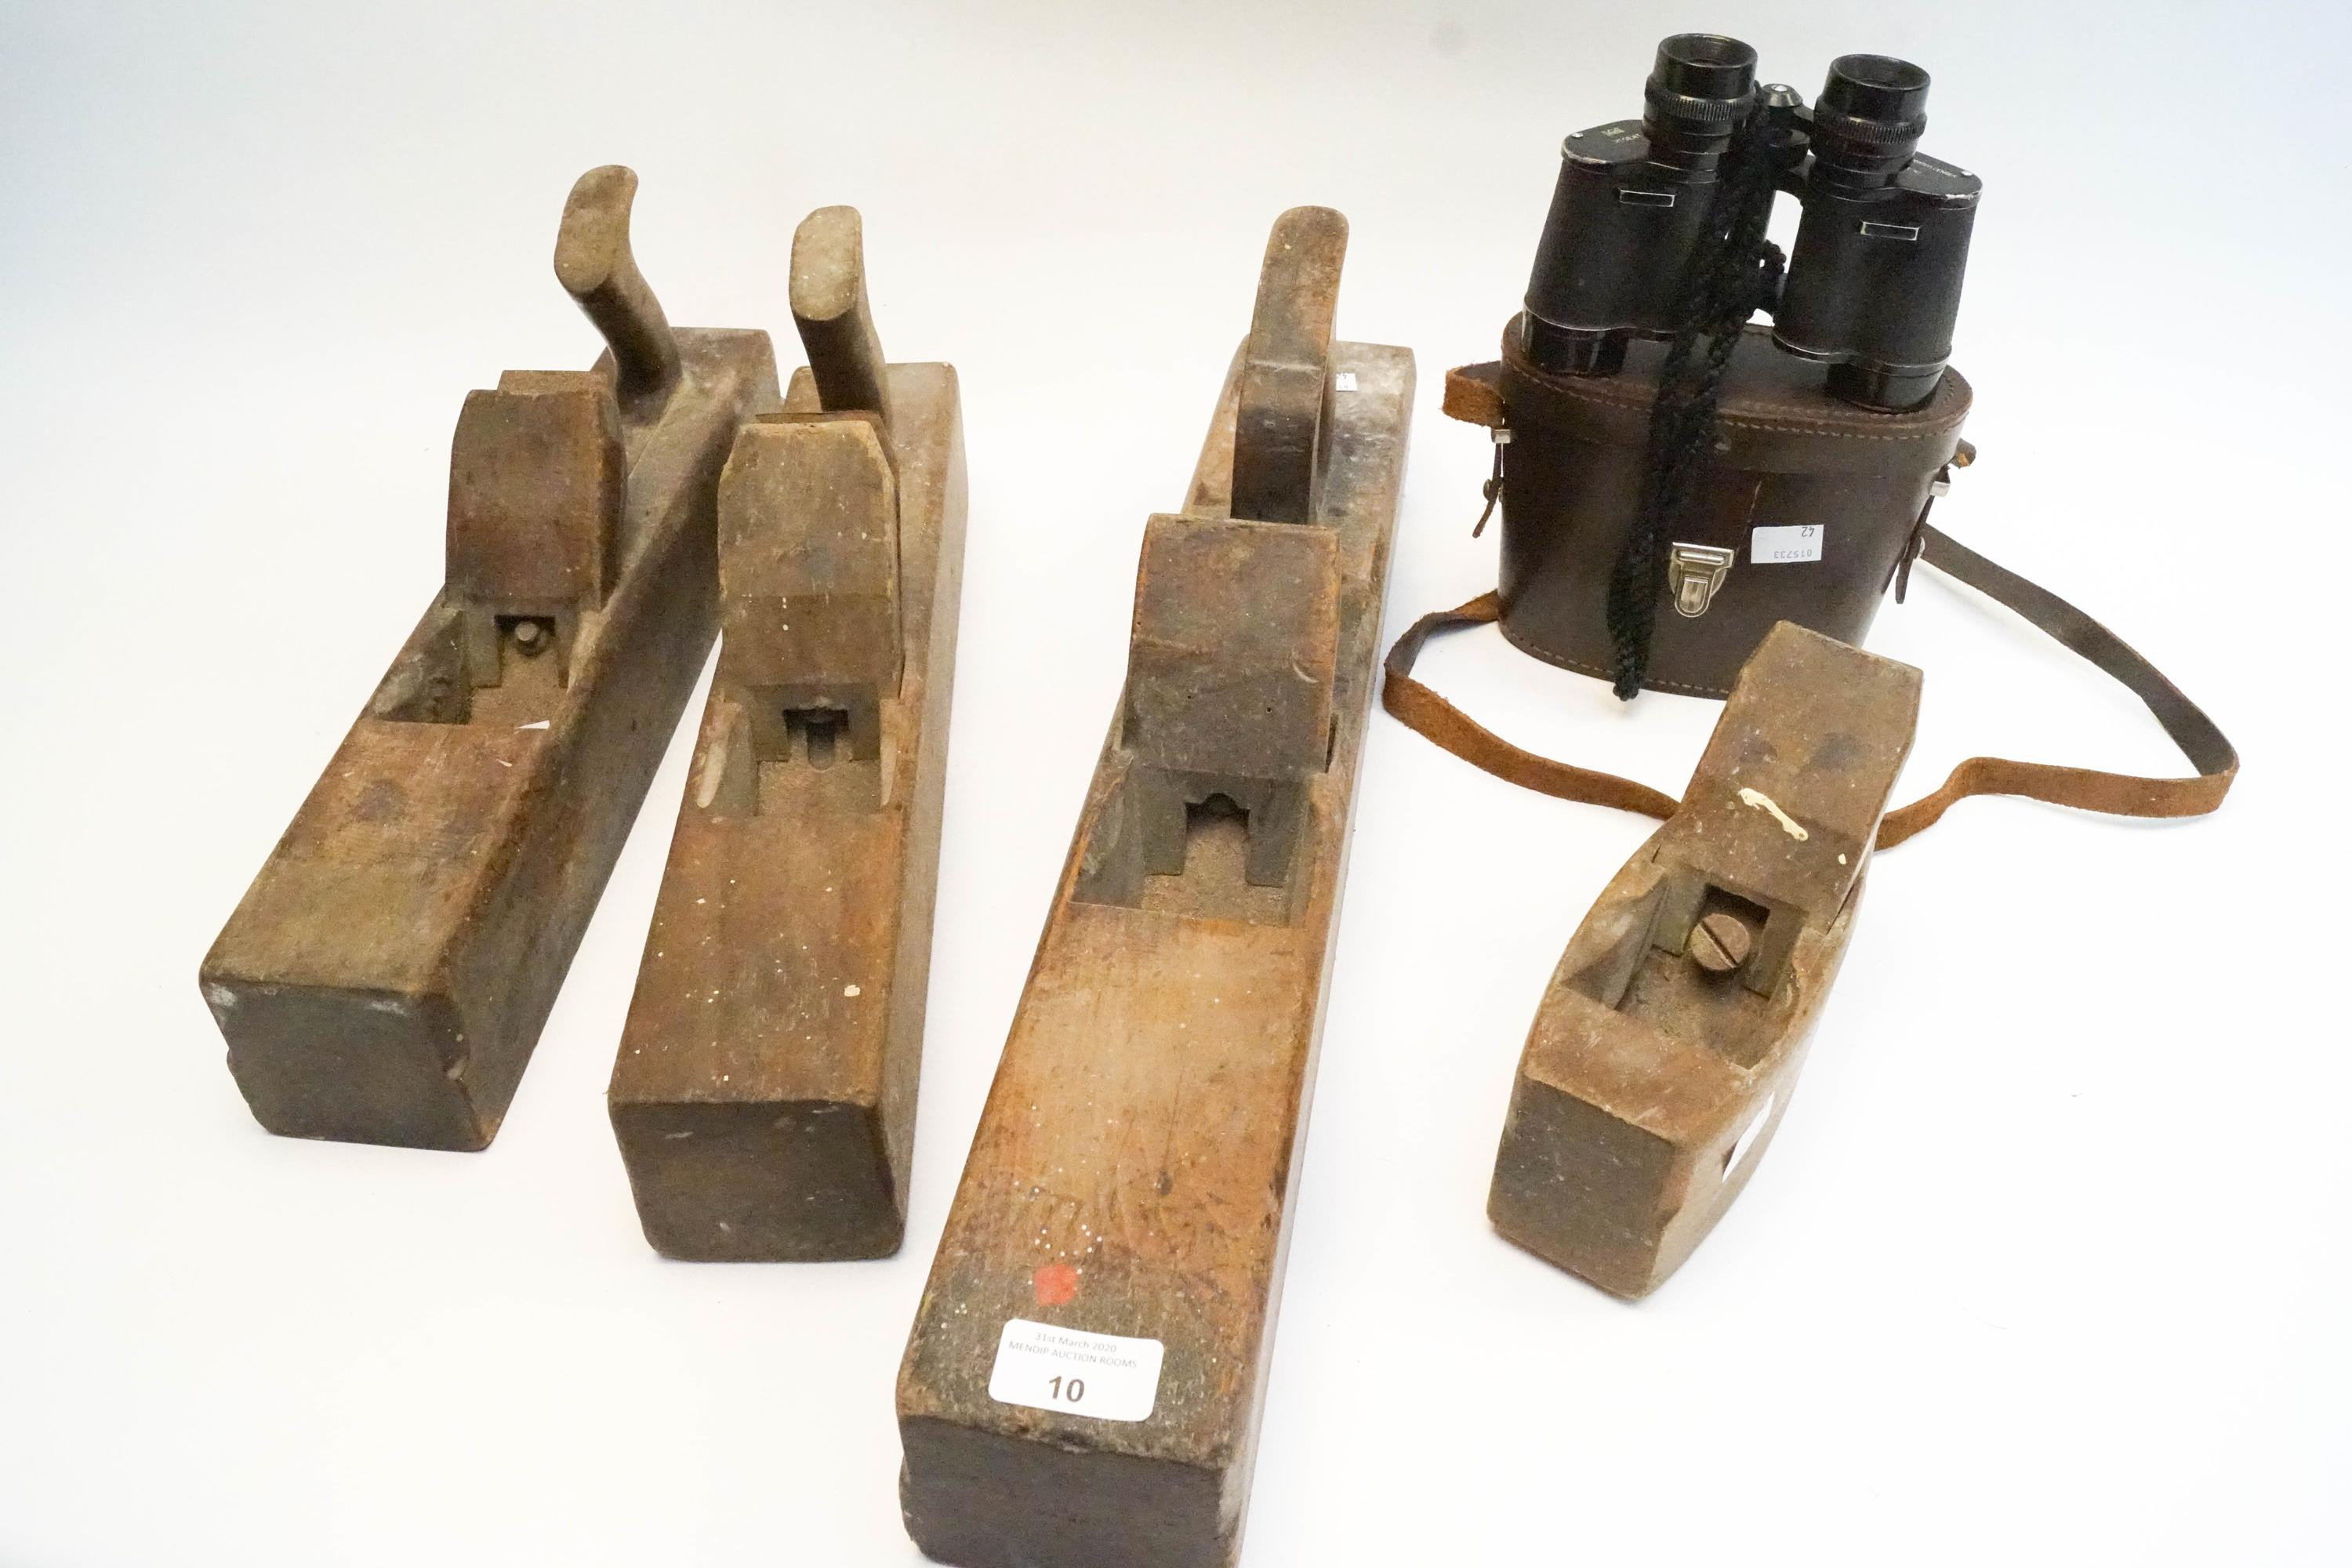 Lot 10 - Four wood planes and a pair of binoculars